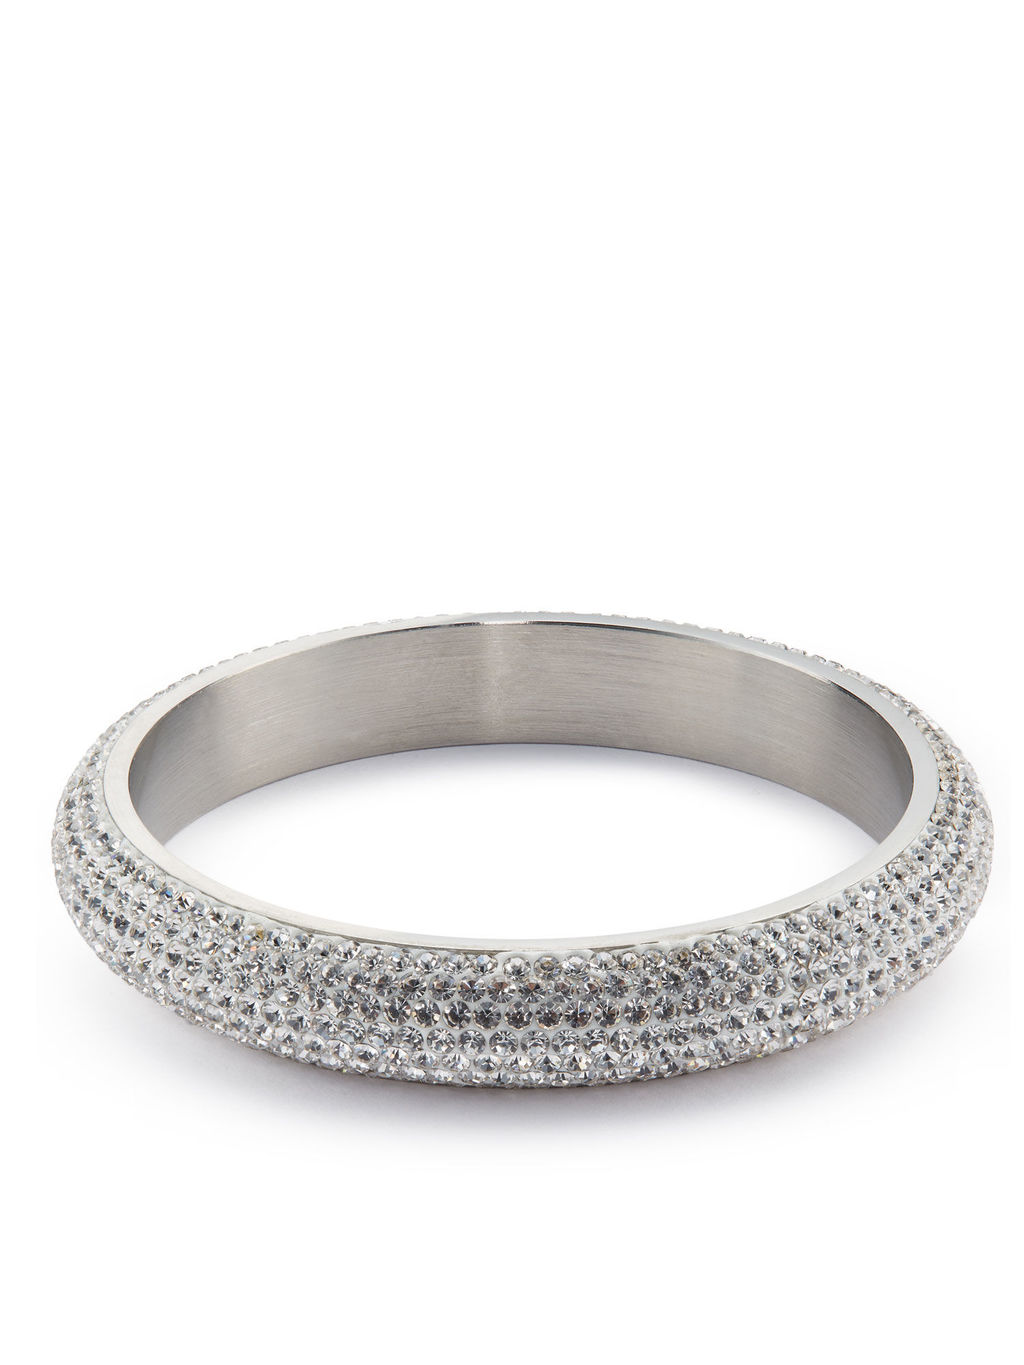 Thick Diamonte Silver Cuff - predominant colour: silver; occasions: evening, occasion; style: bangle/standard; size: large/oversized; material: chain/metal; finish: metallic; embellishment: crystals/glass; season: s/s 2016; wardrobe: event